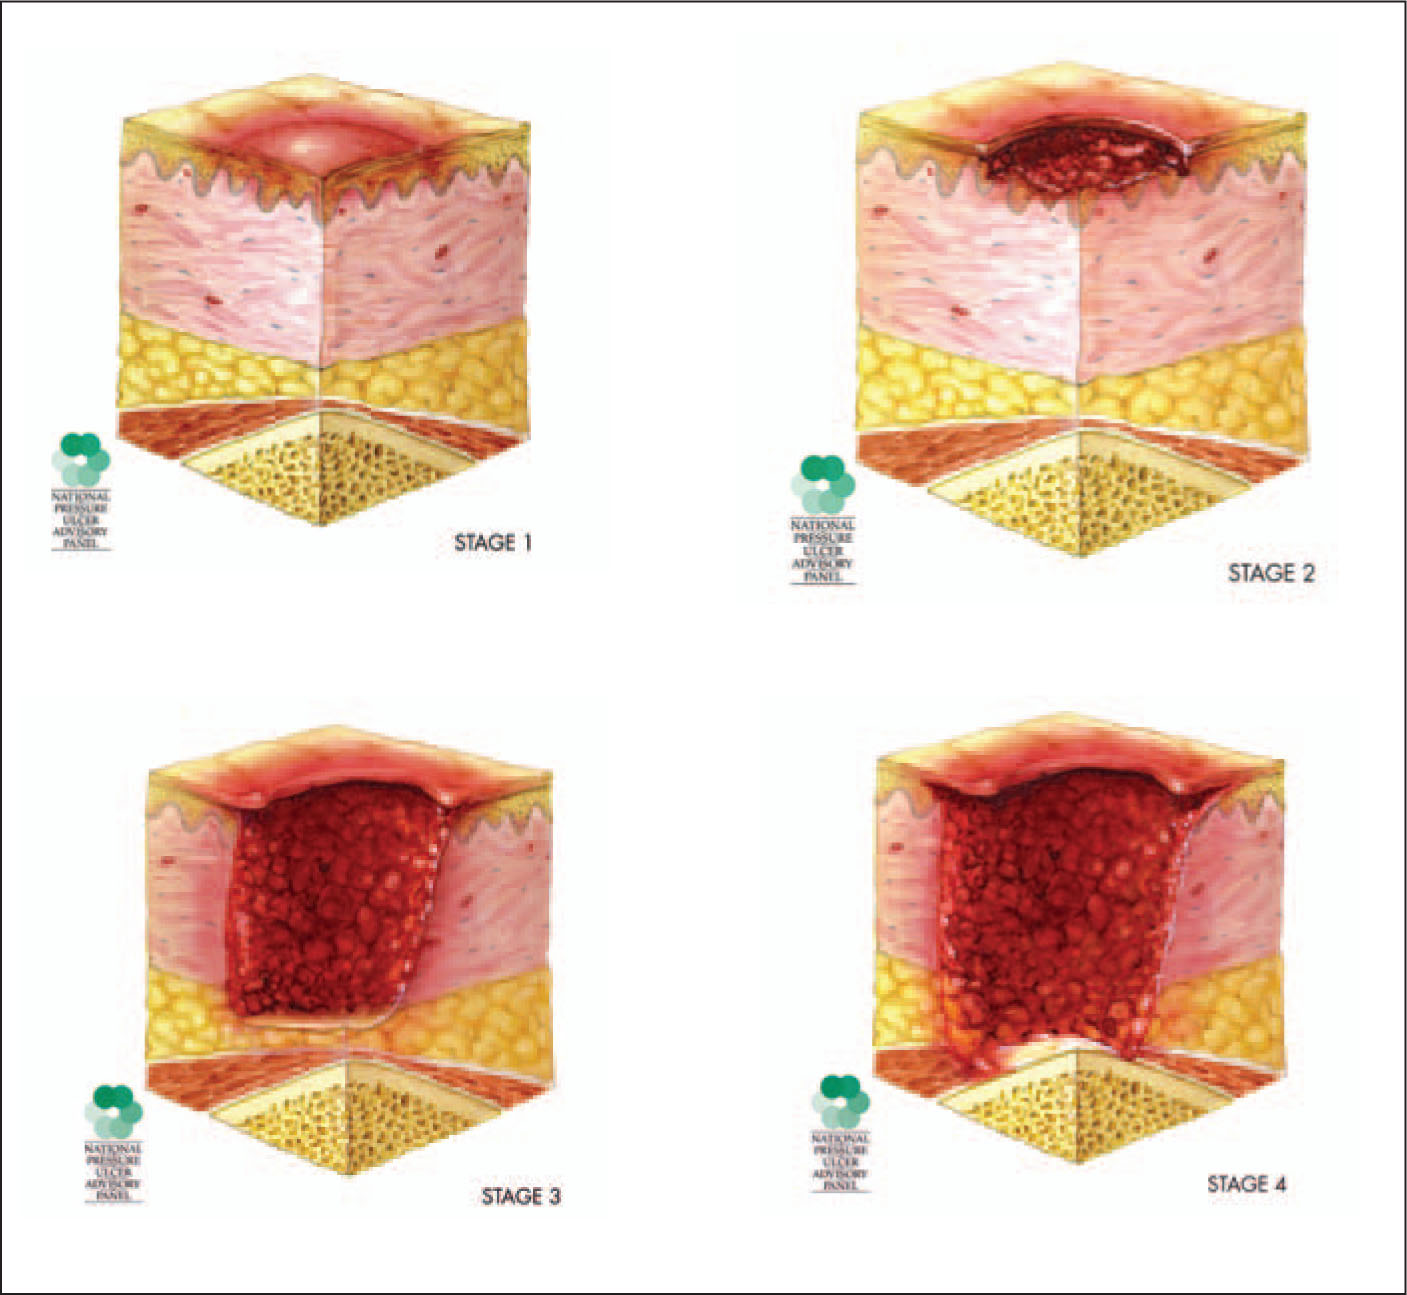 "Staging of Pressure Ulcers. Stage 1: Nonblanchable Erythema (redness that Does not Quickly Fade) of Intact (unbroken) Skin; Could also Include Warmth, Swelling. Dark Skin Might Appear Discolored Instead of Red. Stage 2: Superficial (not Very Deep) Ulcers with Loss of Epidermis (outer Layers of Skin), Dermis (underlying, Still Developing Skin Tissue) or Both. They May Look Similar to a Scrape, Blister, ""zit,"" or Crater. Stage 3: Skin Loss to Outer and Underlying Layers of Skin Tissue, with Damage All the Way down to Fascia (connective Tissue of Body). Stage 4: Skin Loss to Outer and Underlying Layers of Skin Tissue, with a Great Deal of Damage and Dead Tissue in the Fascia, Muscle, Bone, Tendon, or Joint Capsule. Images Reproduced with Permission from National Pressure Ulcer Advisory Panel."